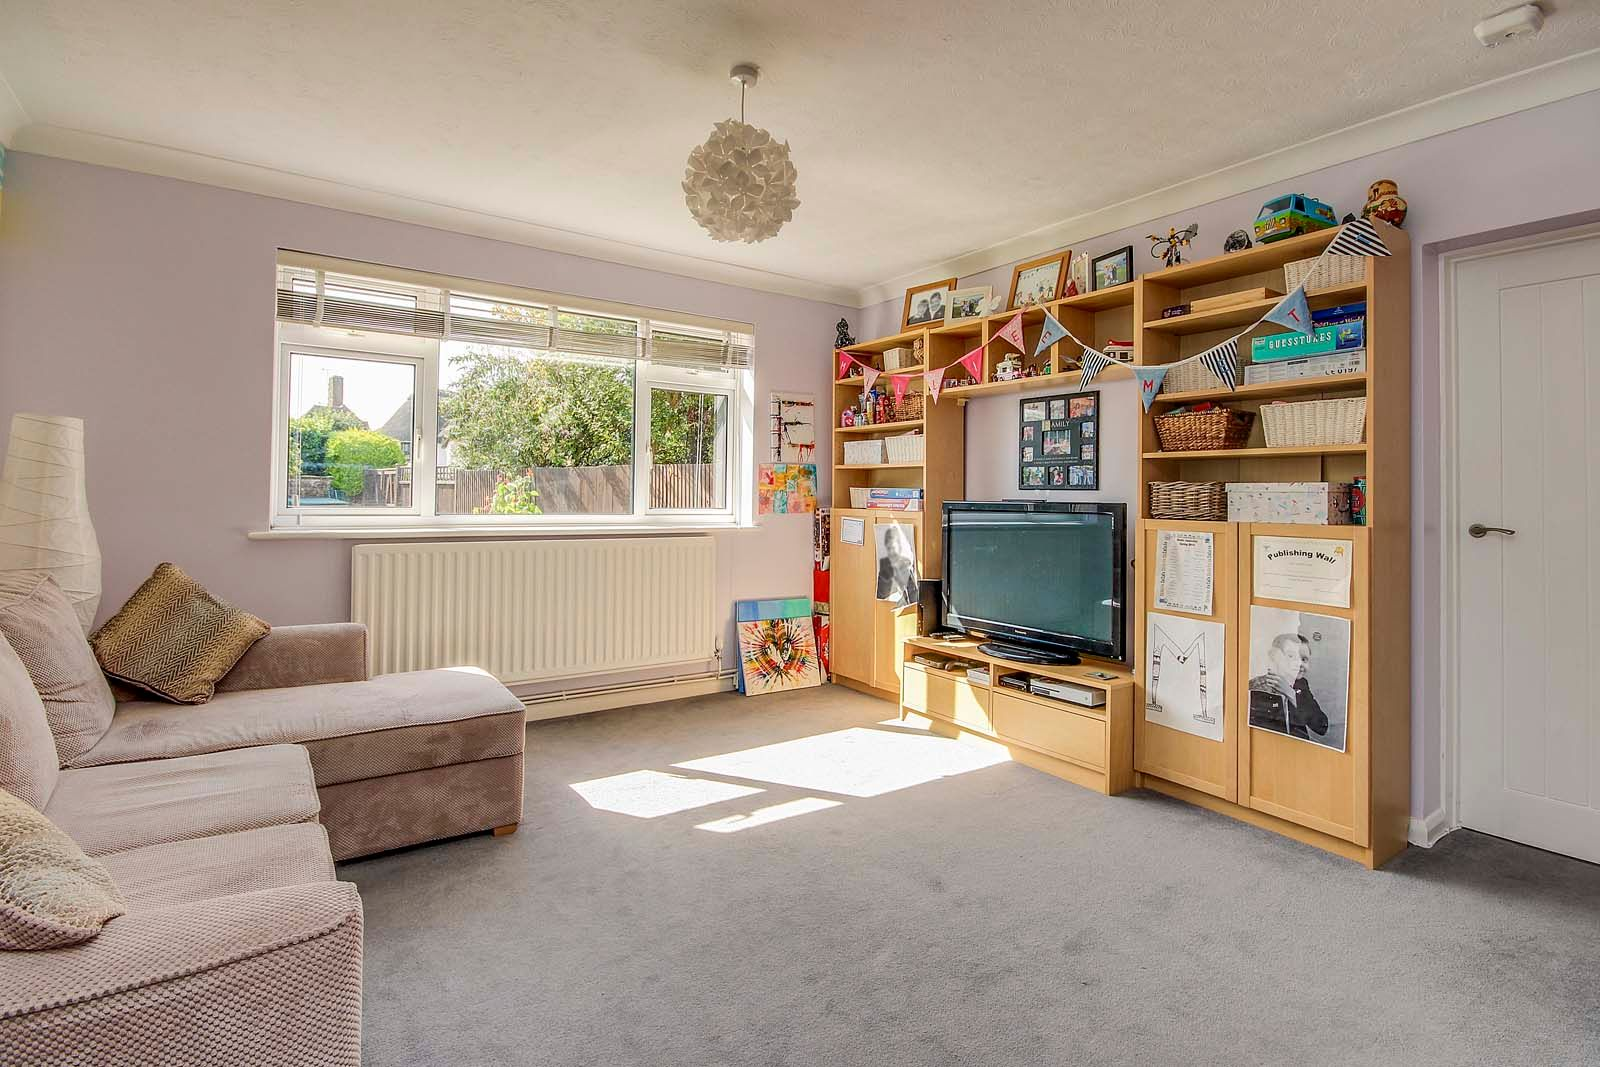 4 bed House for sale in Rustington - Bedroom (Property Image 4)